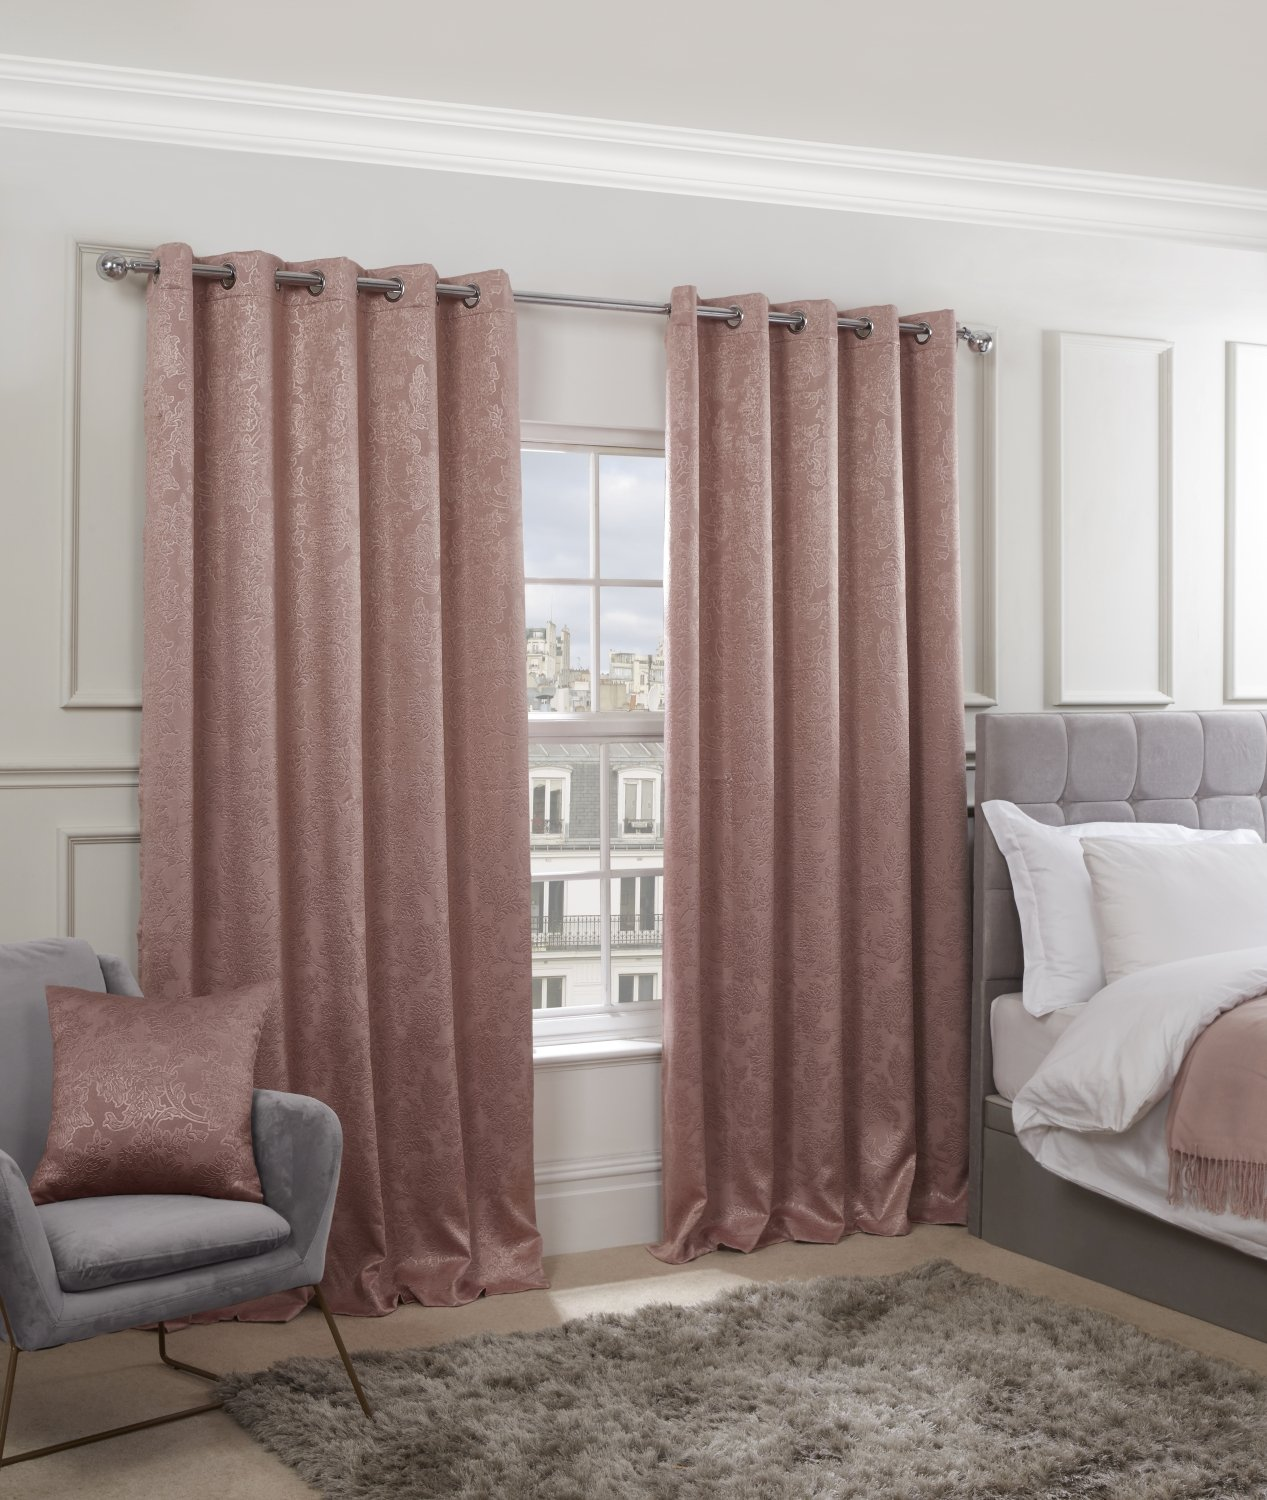 Royal Damask Collection Elegant Woven Blackout Eyelet Curtains In Blush Pink Homefords